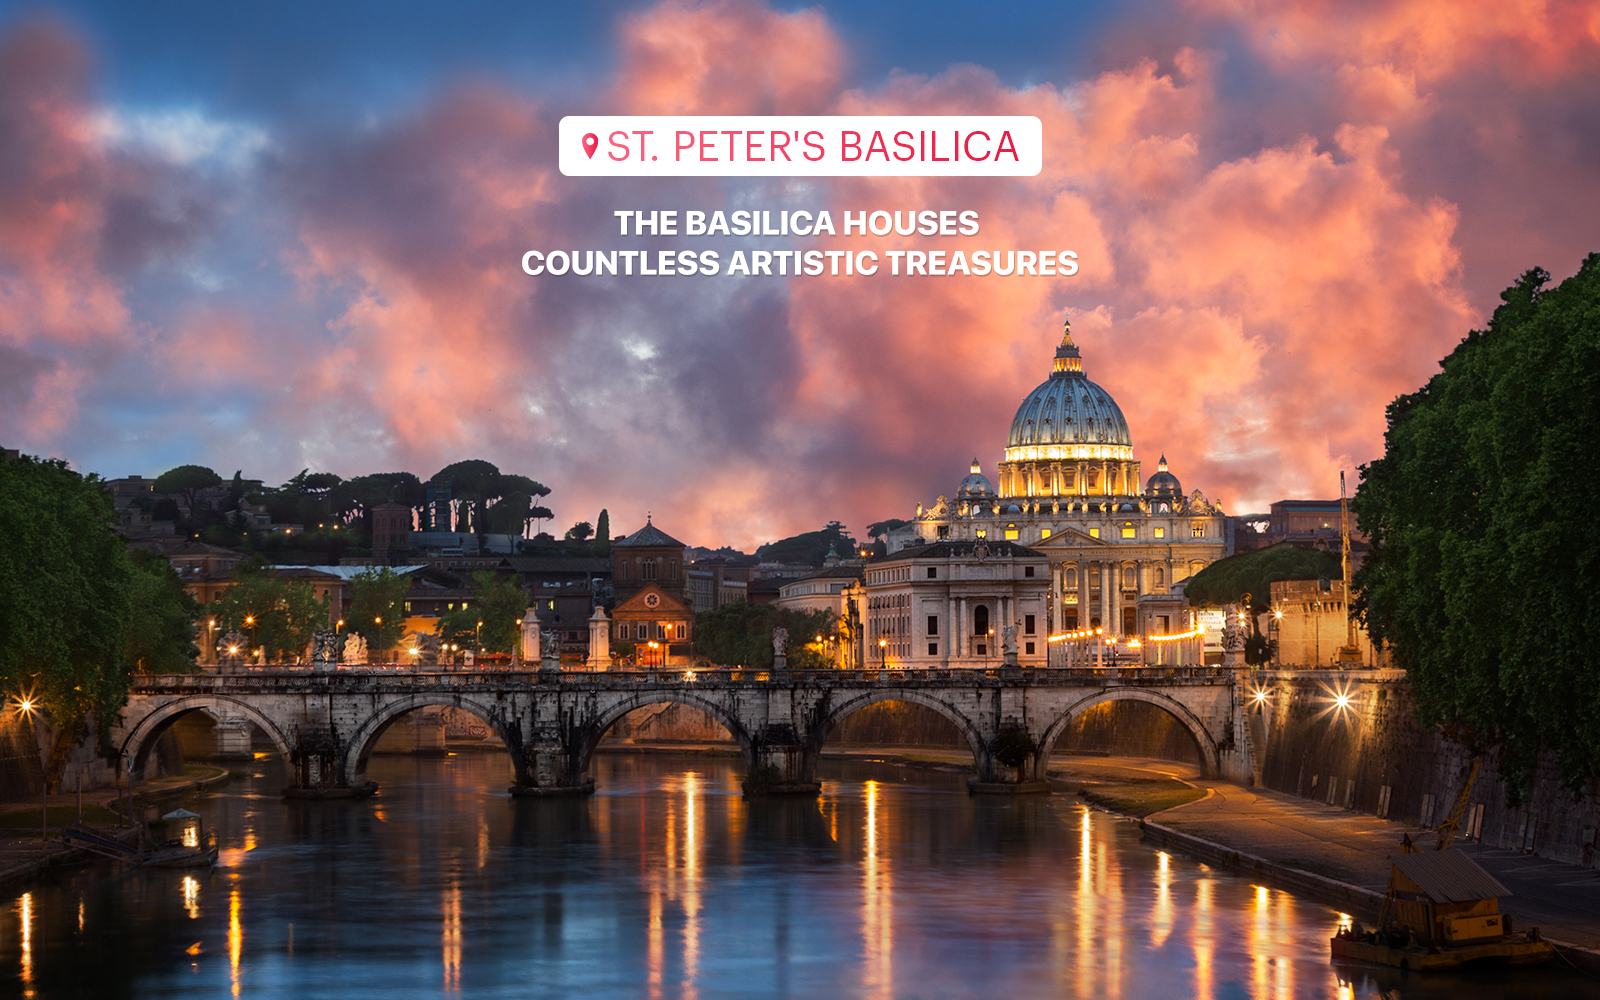 2be9c43a 1746 49e2 82b2 59270d3c3bd1 7828 rome skip the line st peters basilica with audioguide 05